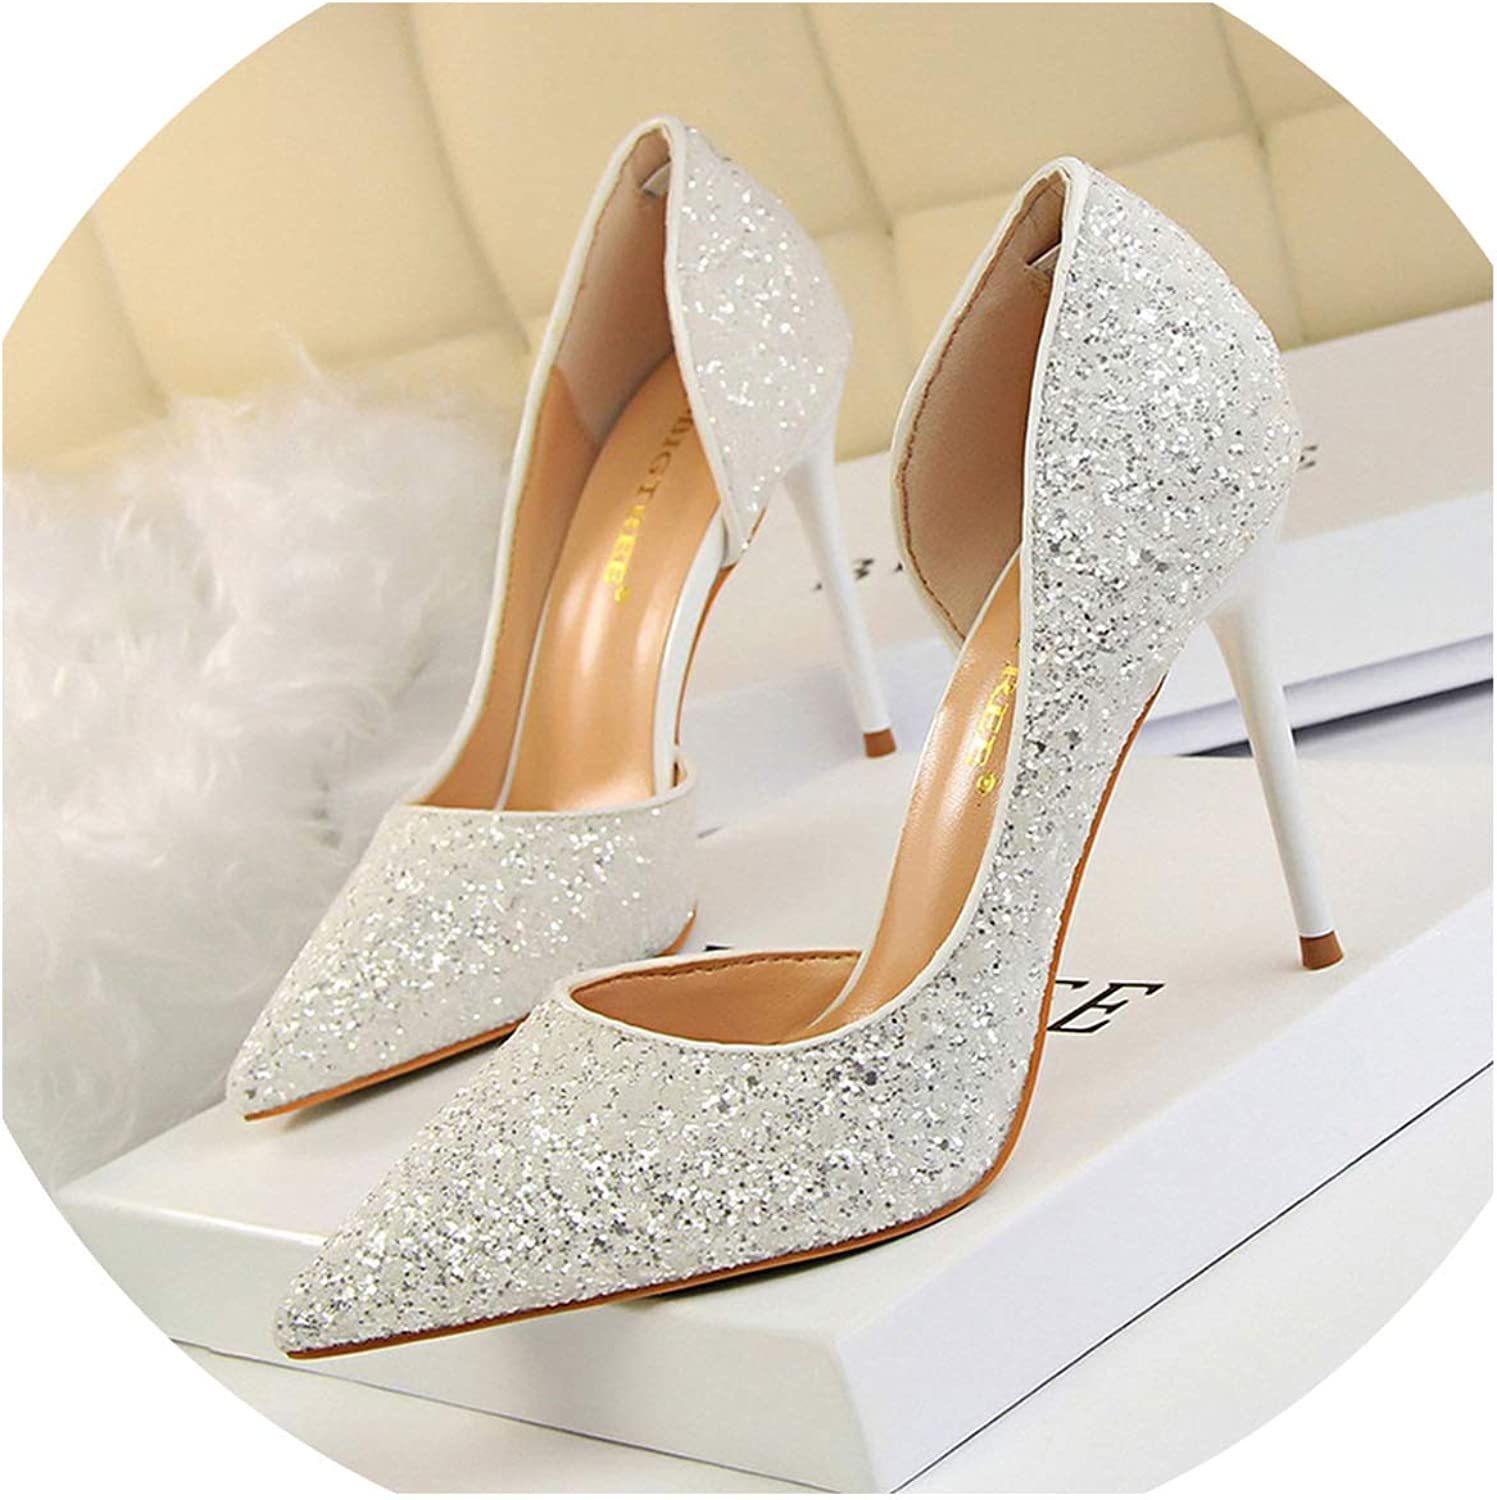 Crack of dawn Women Pumps Sexy Women shoes Wedding Party Heels Shining High Heels Fashion